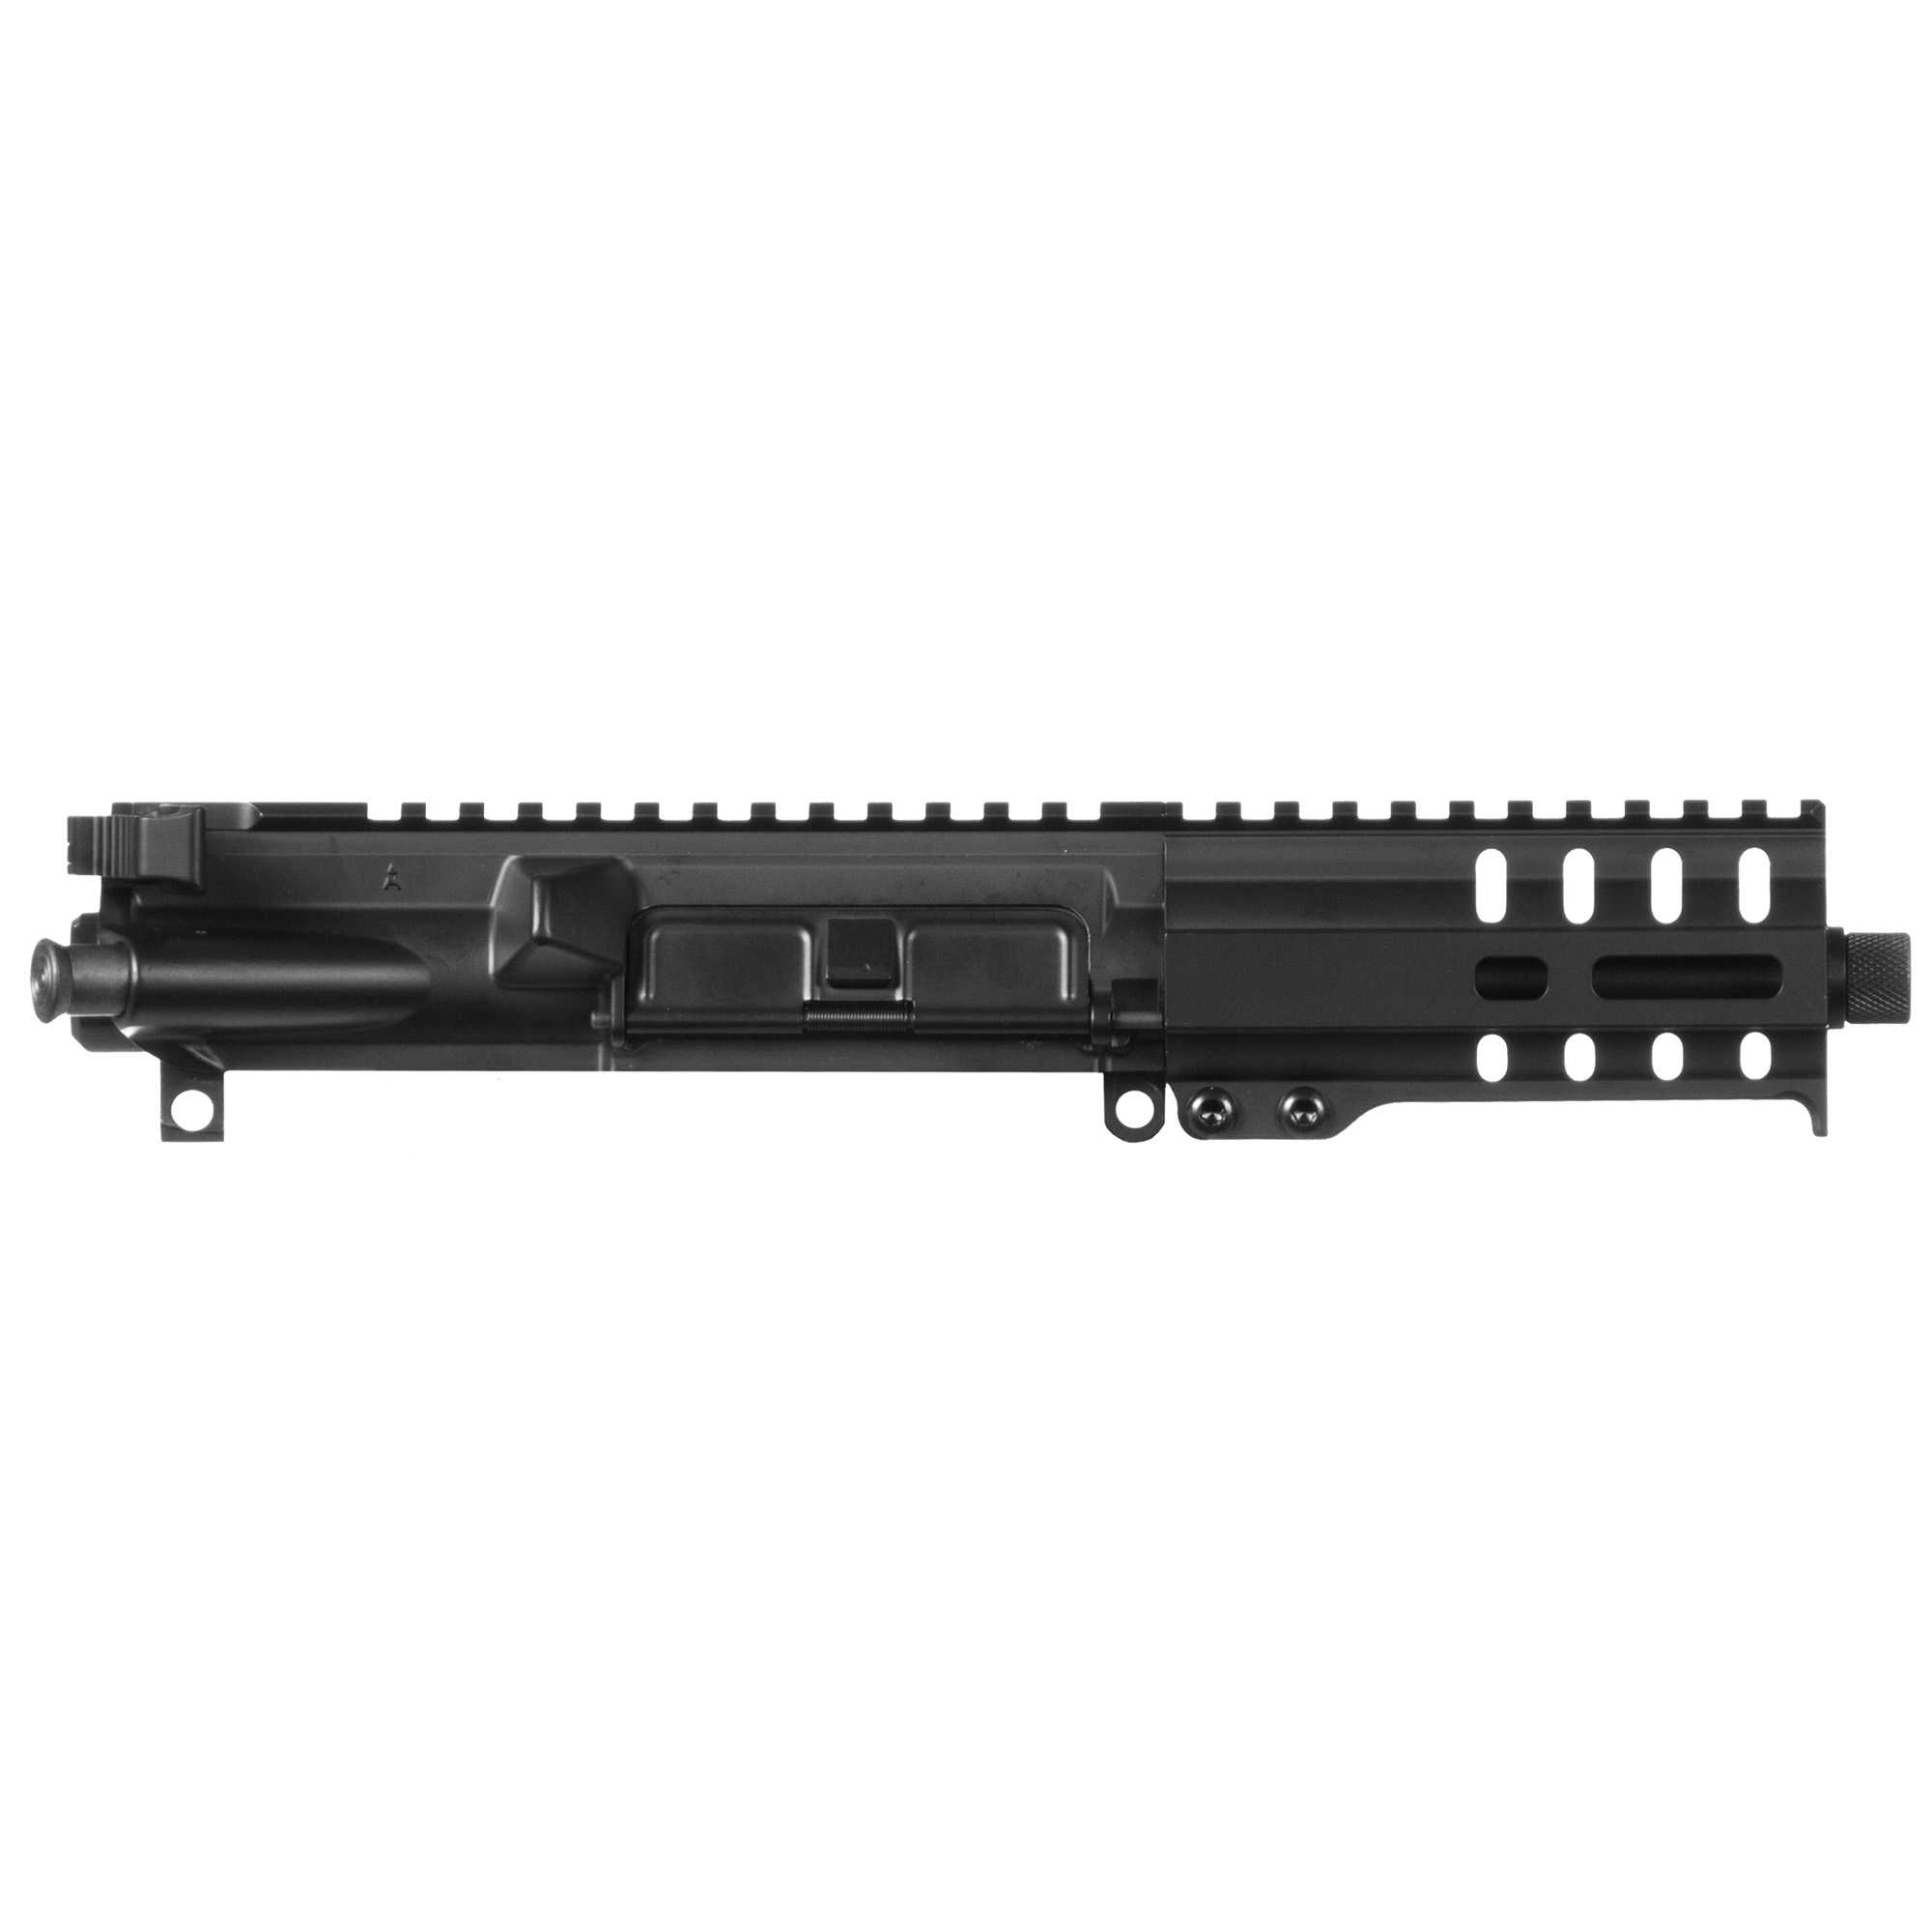 "Cmmg Upper Banshee 300 9mm 5"" Blk"